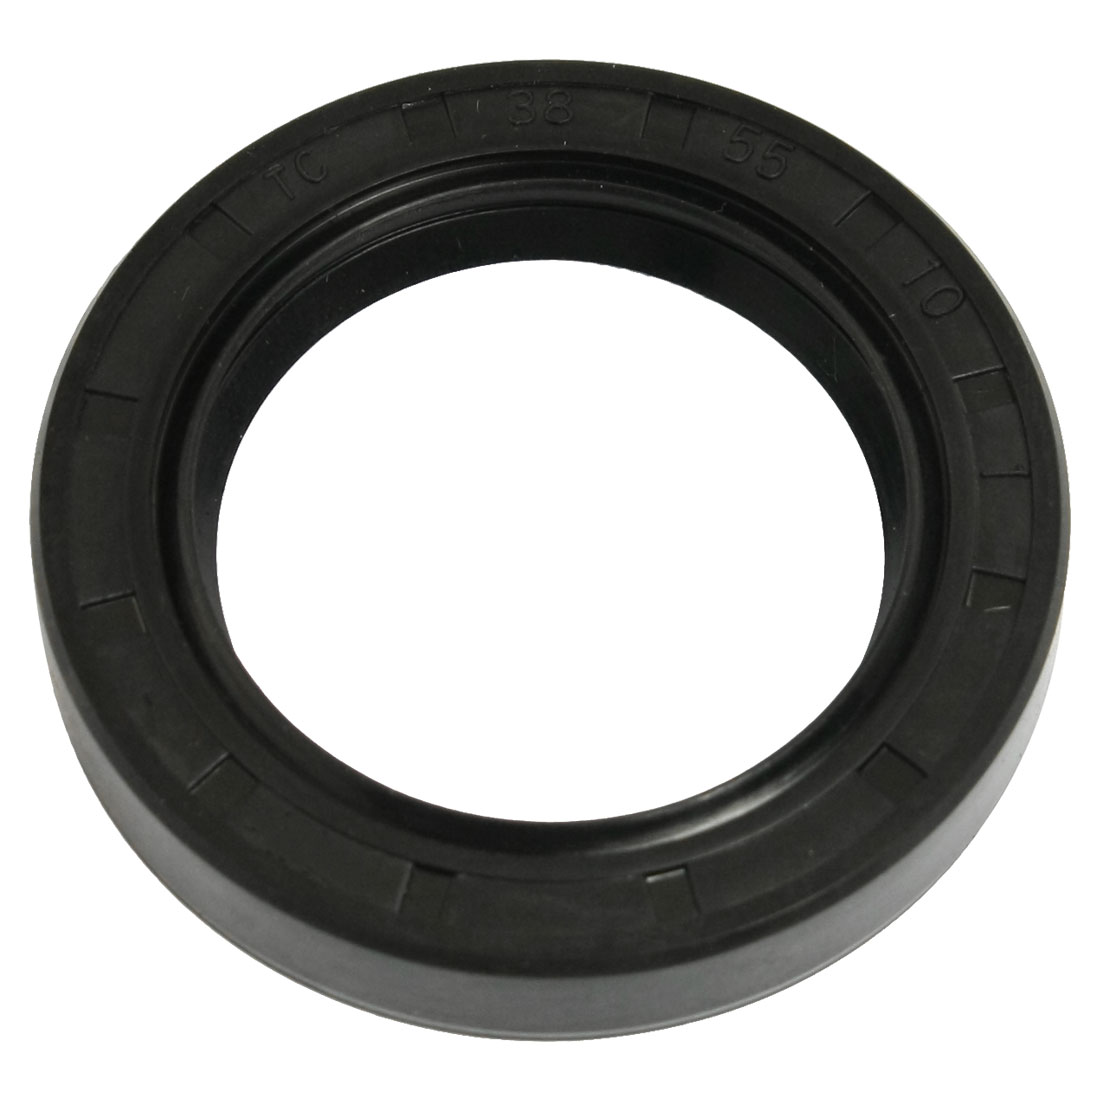 Nitrile Rubber Double Lip TC Oil Seal Black 38mm x 55mm x 10mm